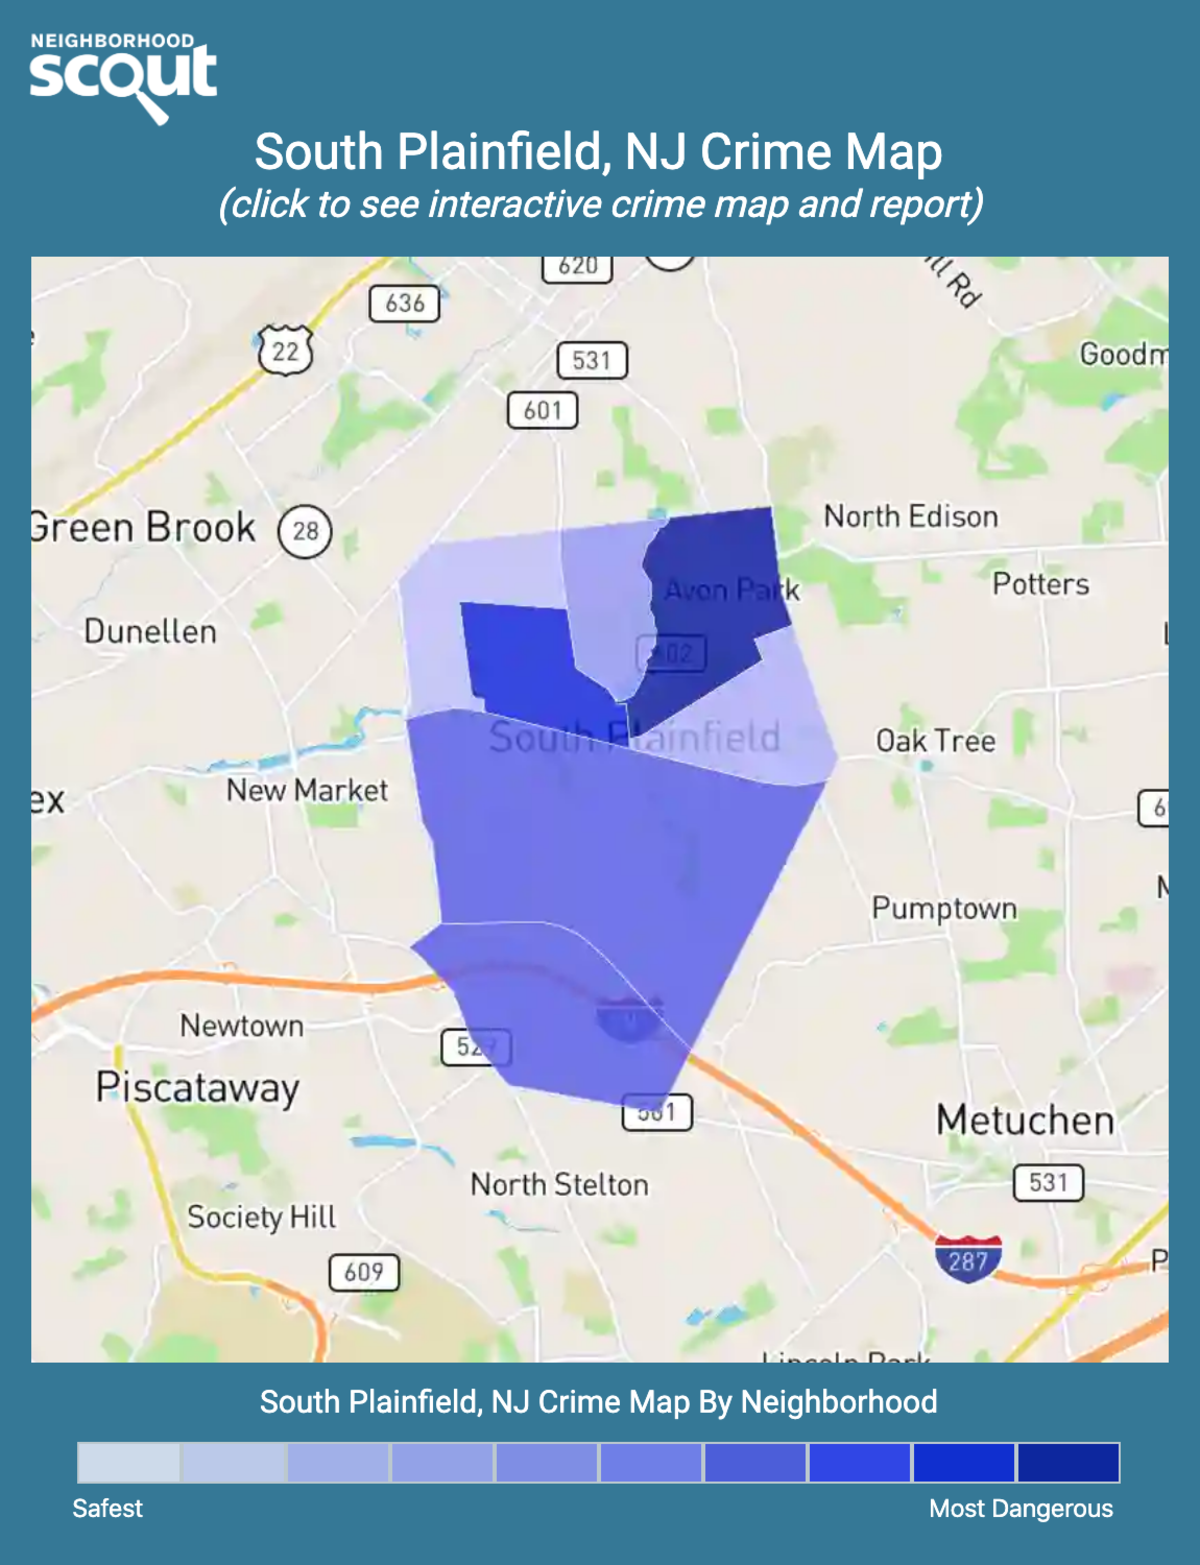 South Plainfield, New Jersey crime map